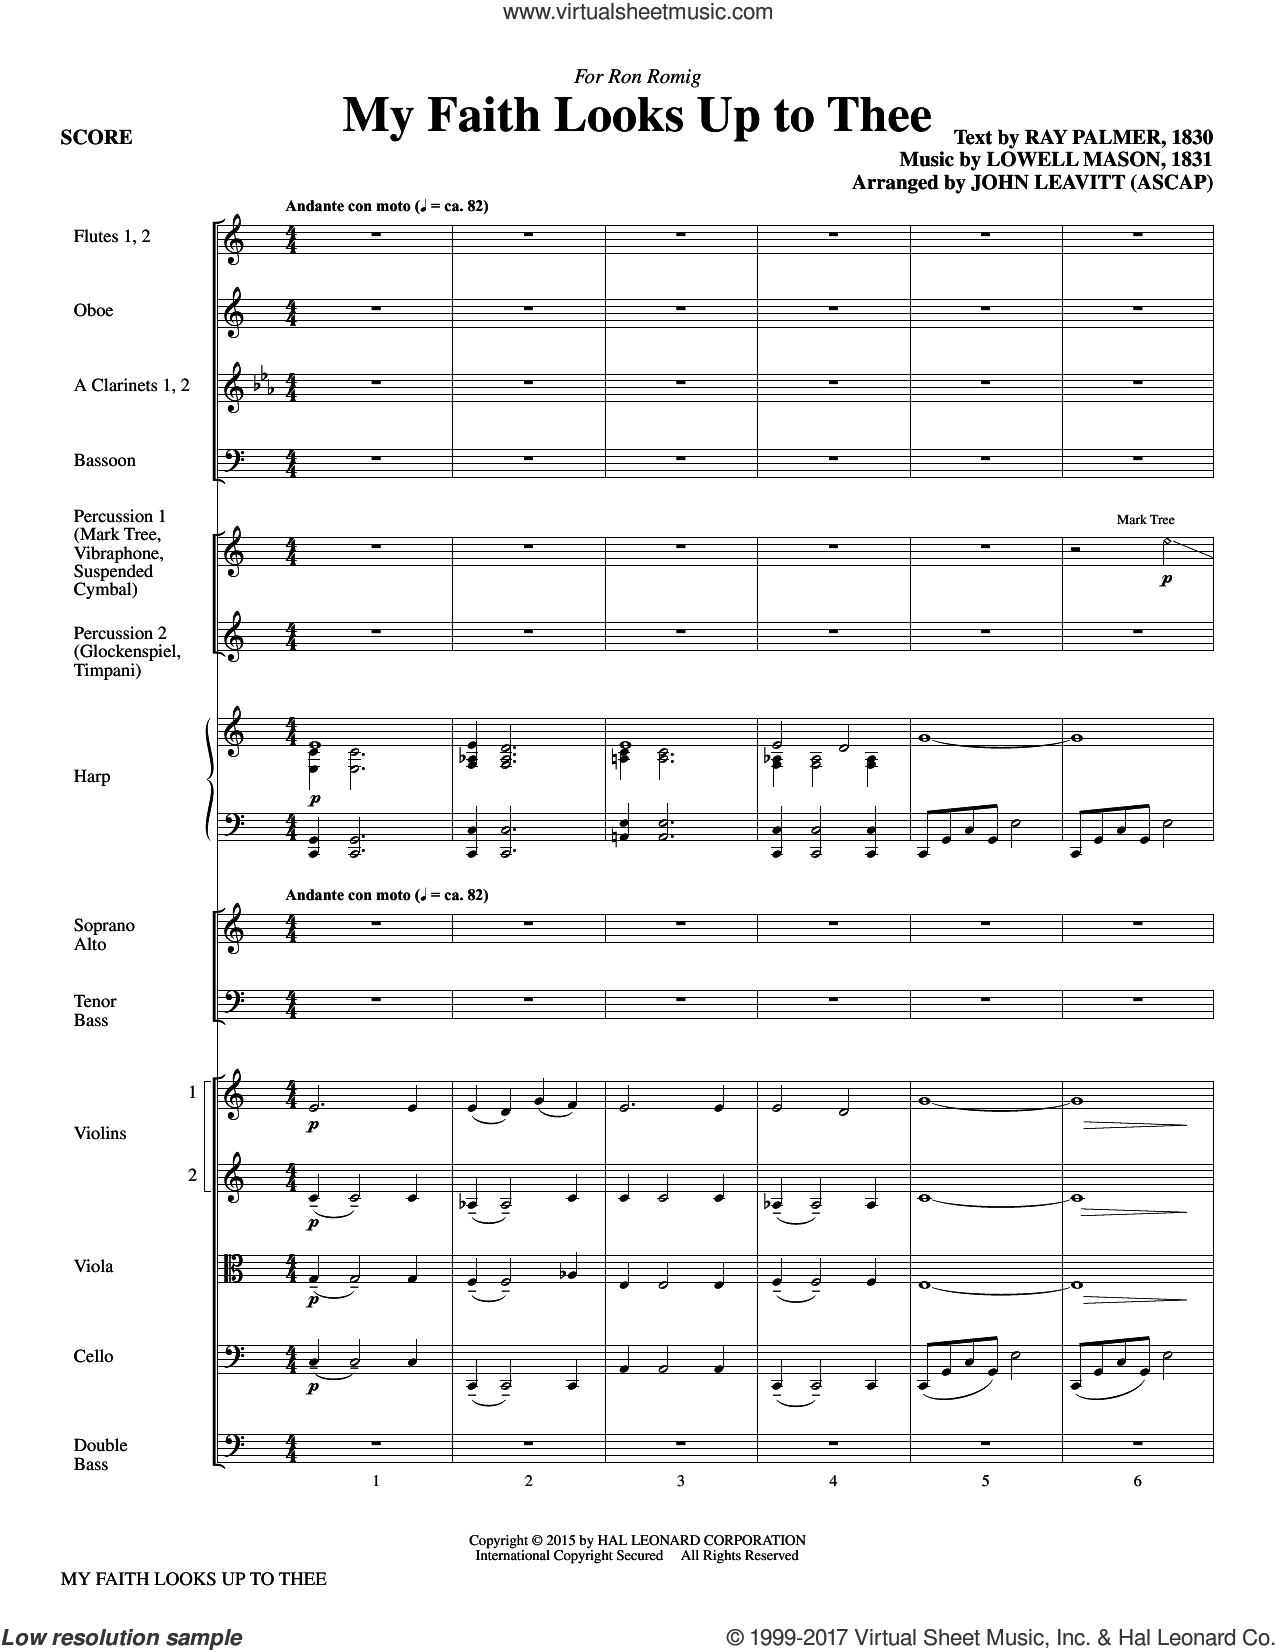 My Faith Looks Up To Thee (COMPLETE) sheet music for orchestra/band by John Leavitt, Lowell Mason and Ray Palmer, intermediate skill level